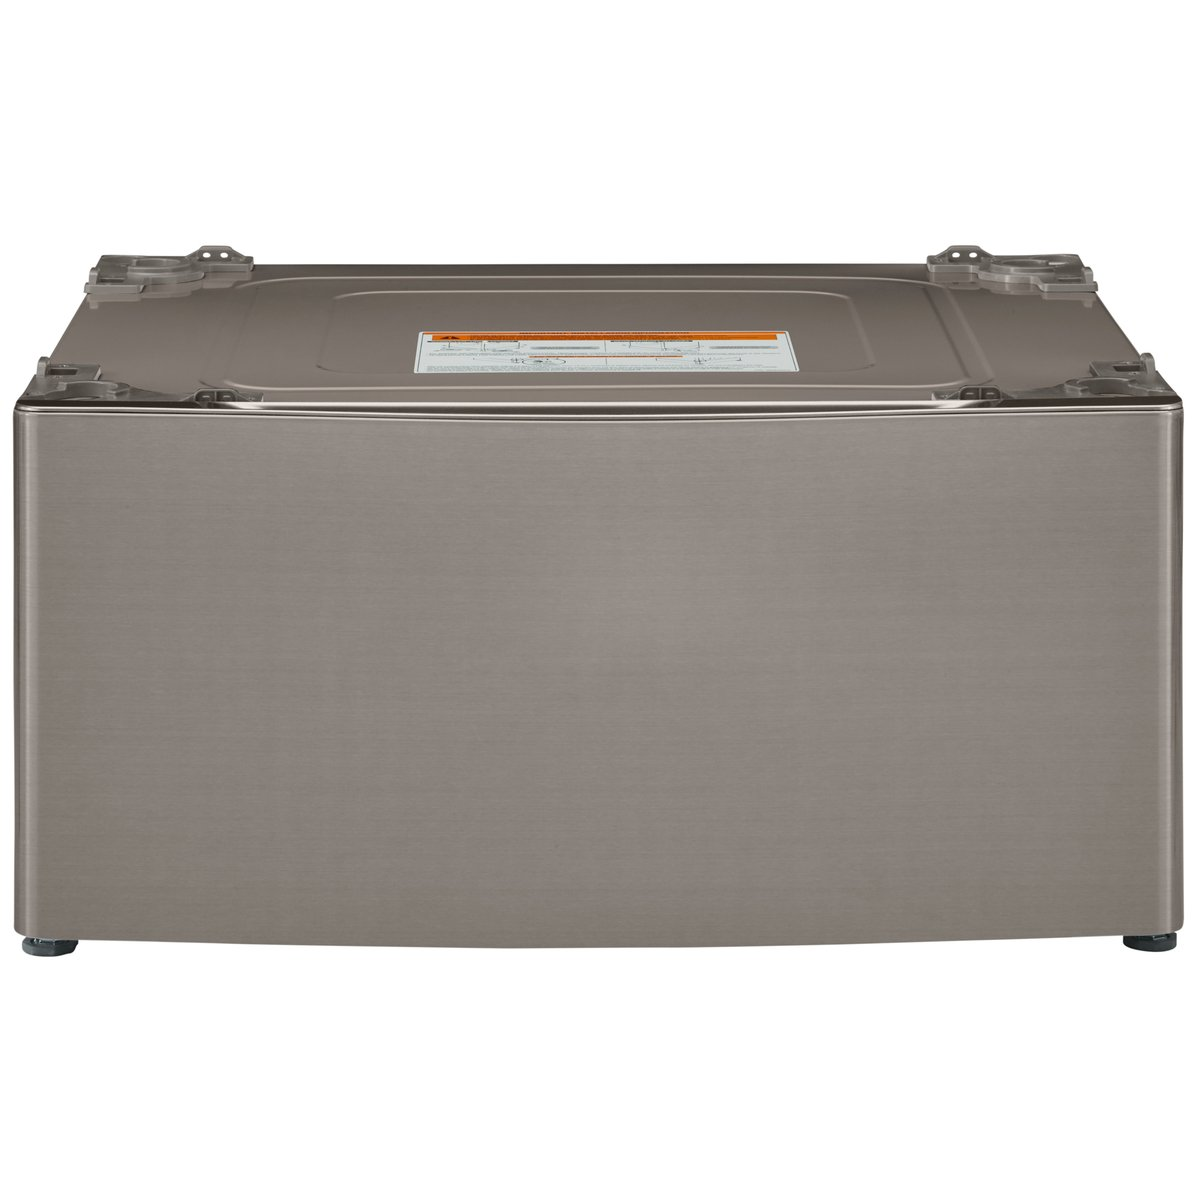 Kenmore Elite 51043 29'' Wide Laundry Pedestal with Storage Drawer in Metallic silver, includes delivery and hookup (Available in select cities only)